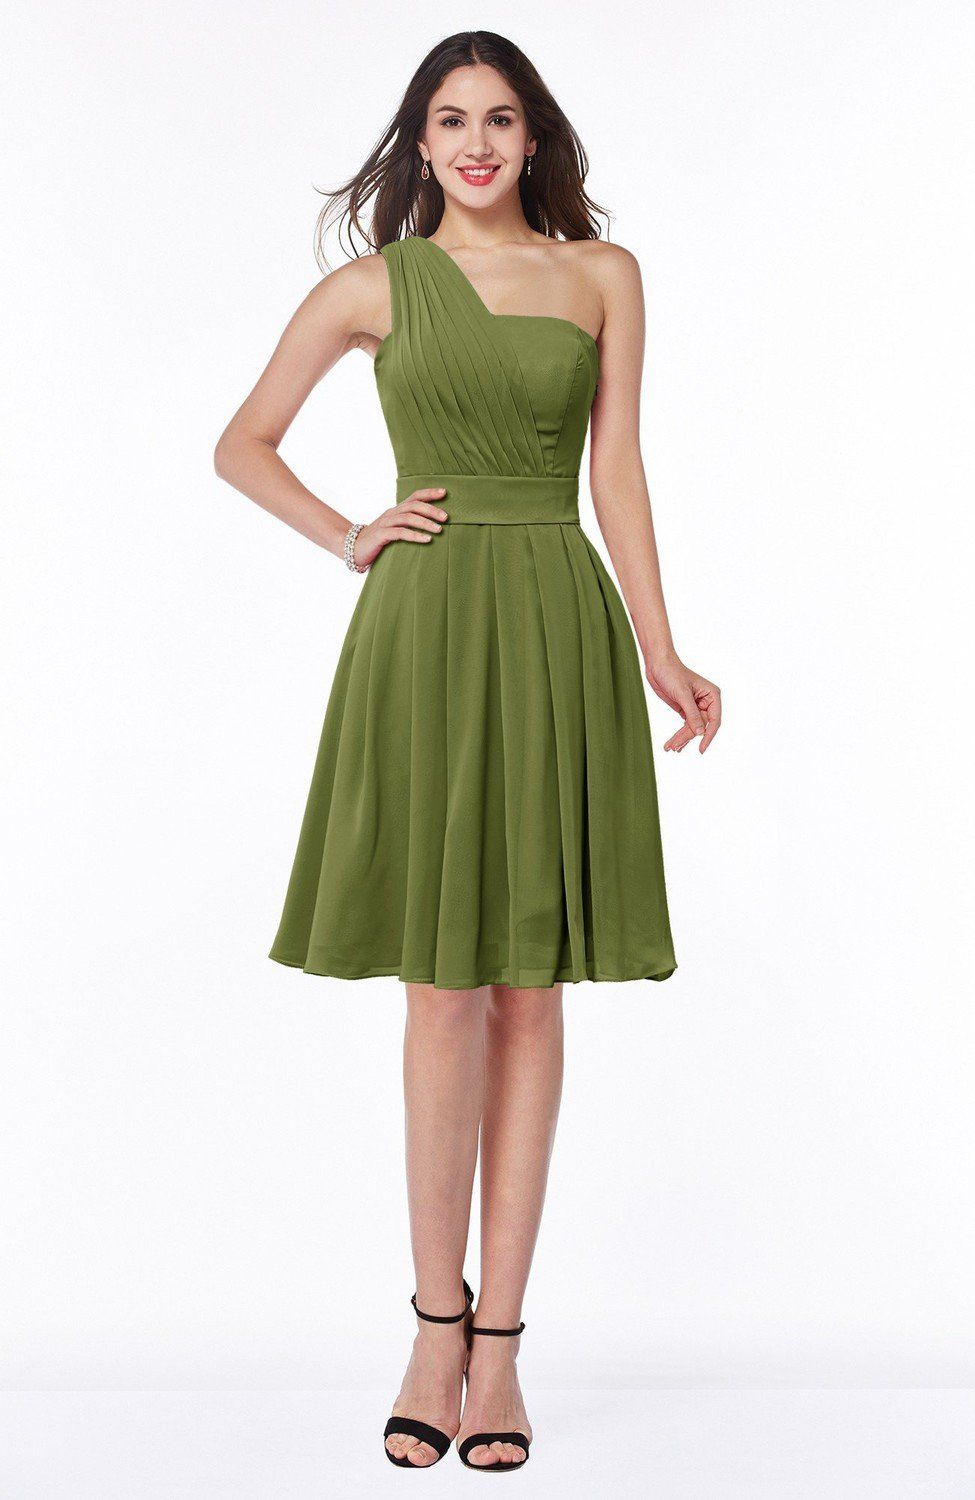 Olive Green Bridesmaid Dress Simple Sleeveless Zip Up Knee Length Short Ribbon Lovecolordress Plum Bridesmaid Dresses Royal Blue Bridesmaid Dresses Olive Green Bridesmaid Dresses [ 1500 x 975 Pixel ]